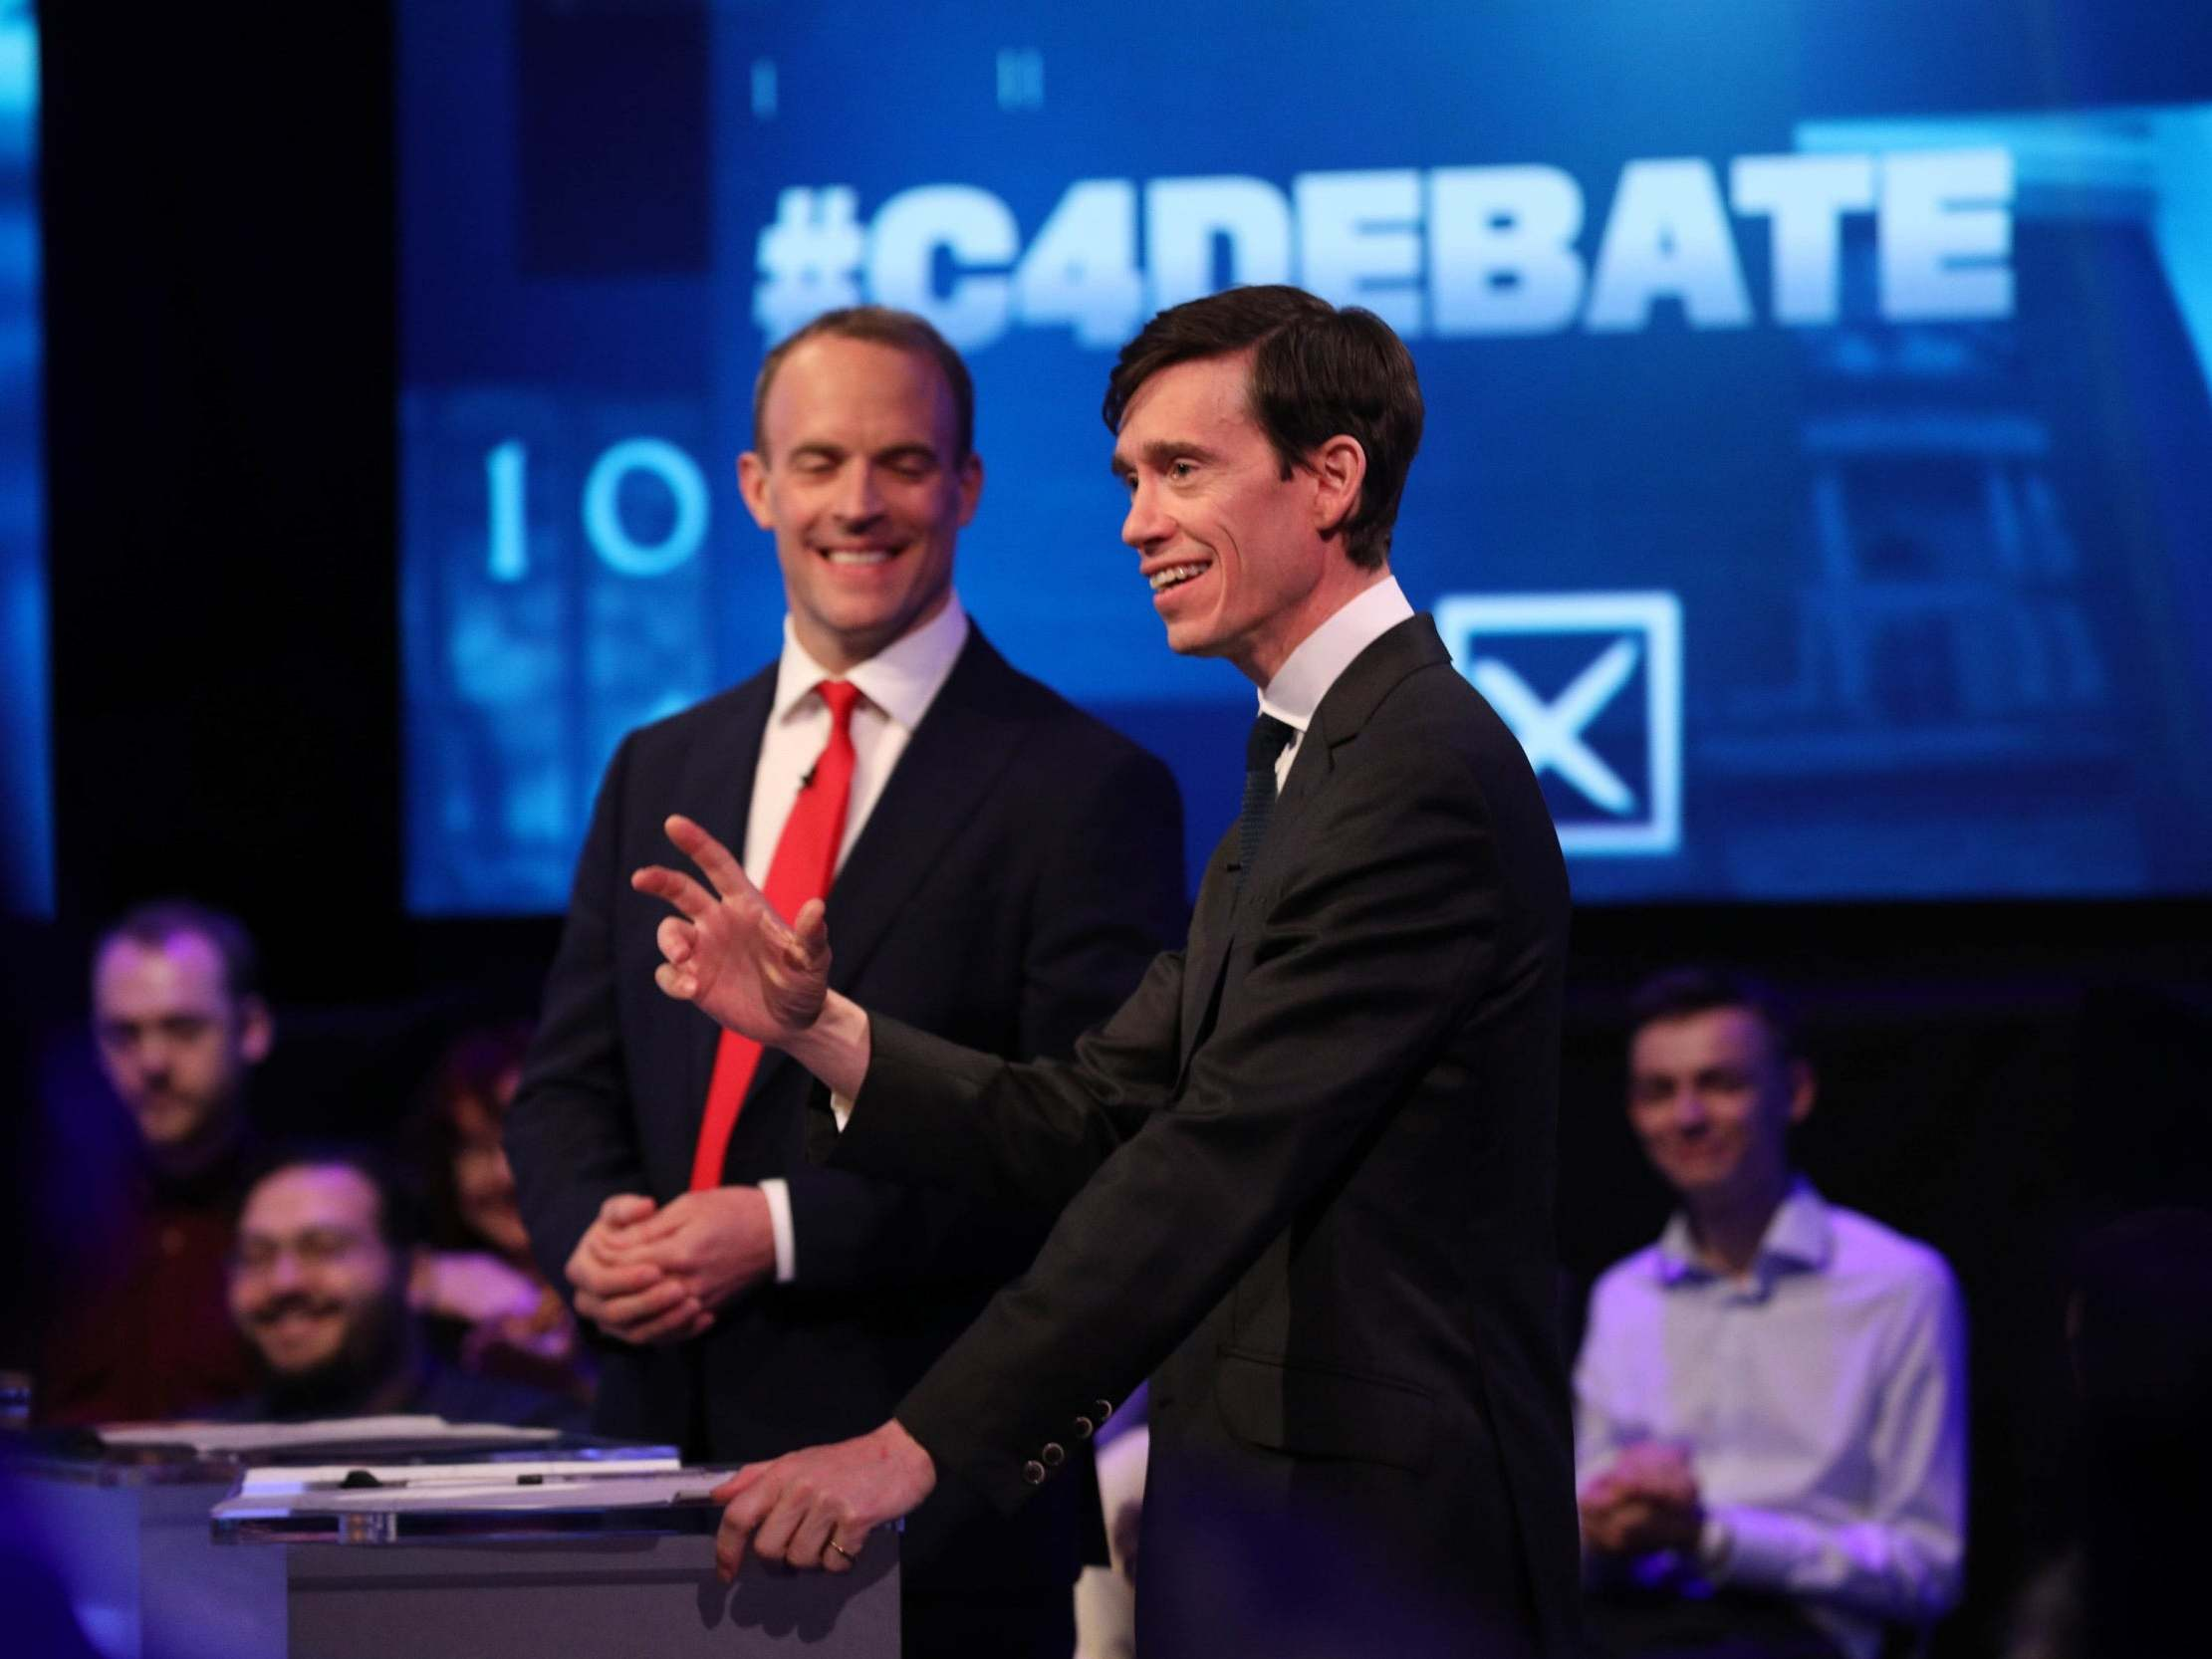 Tory leadership debate: Rory Stewart compares Brexit promises to cramming rubbish into a bin